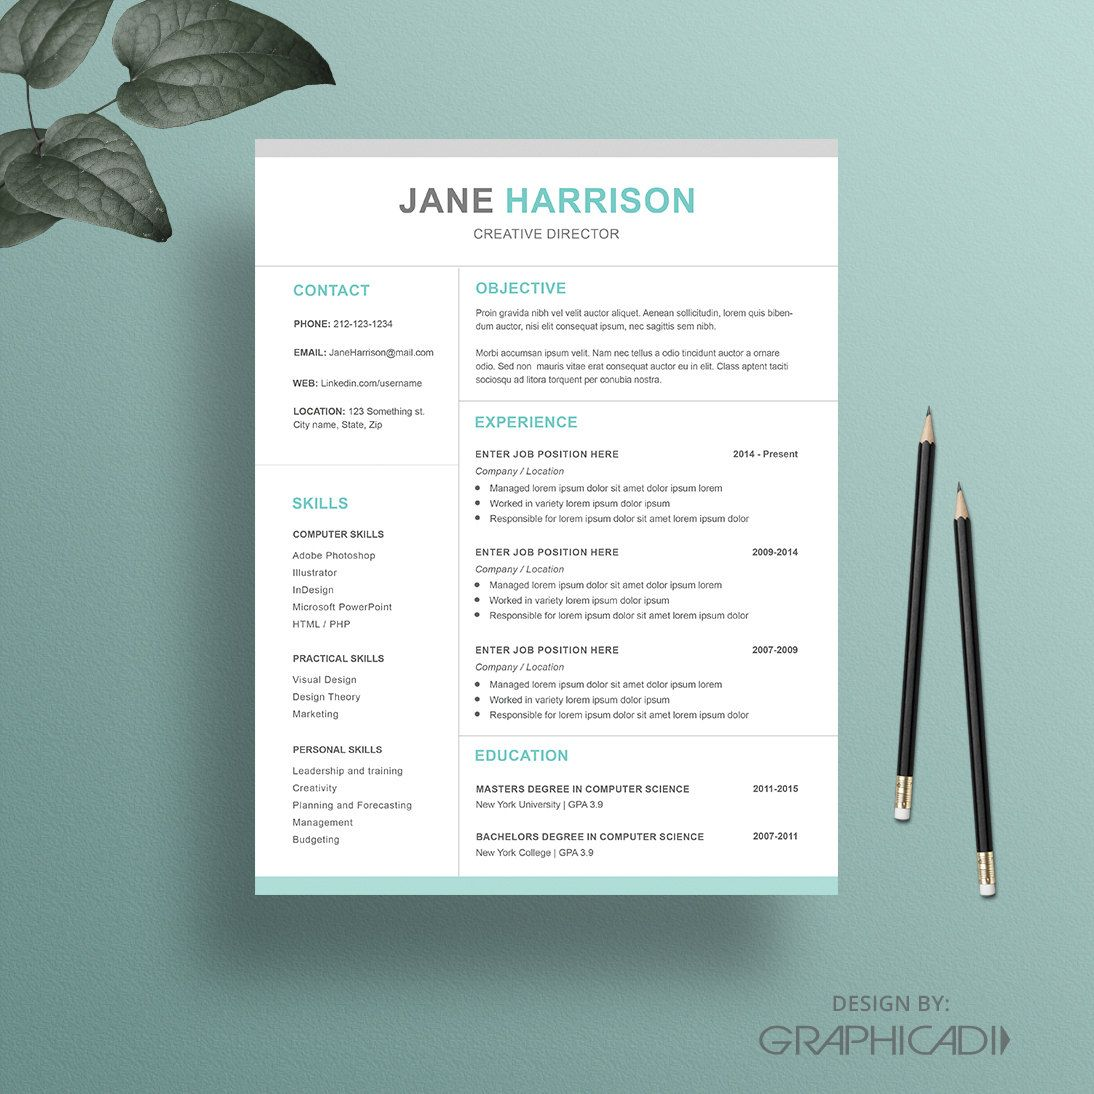 Resume Template With A Matching Cover Letter And Reference Page